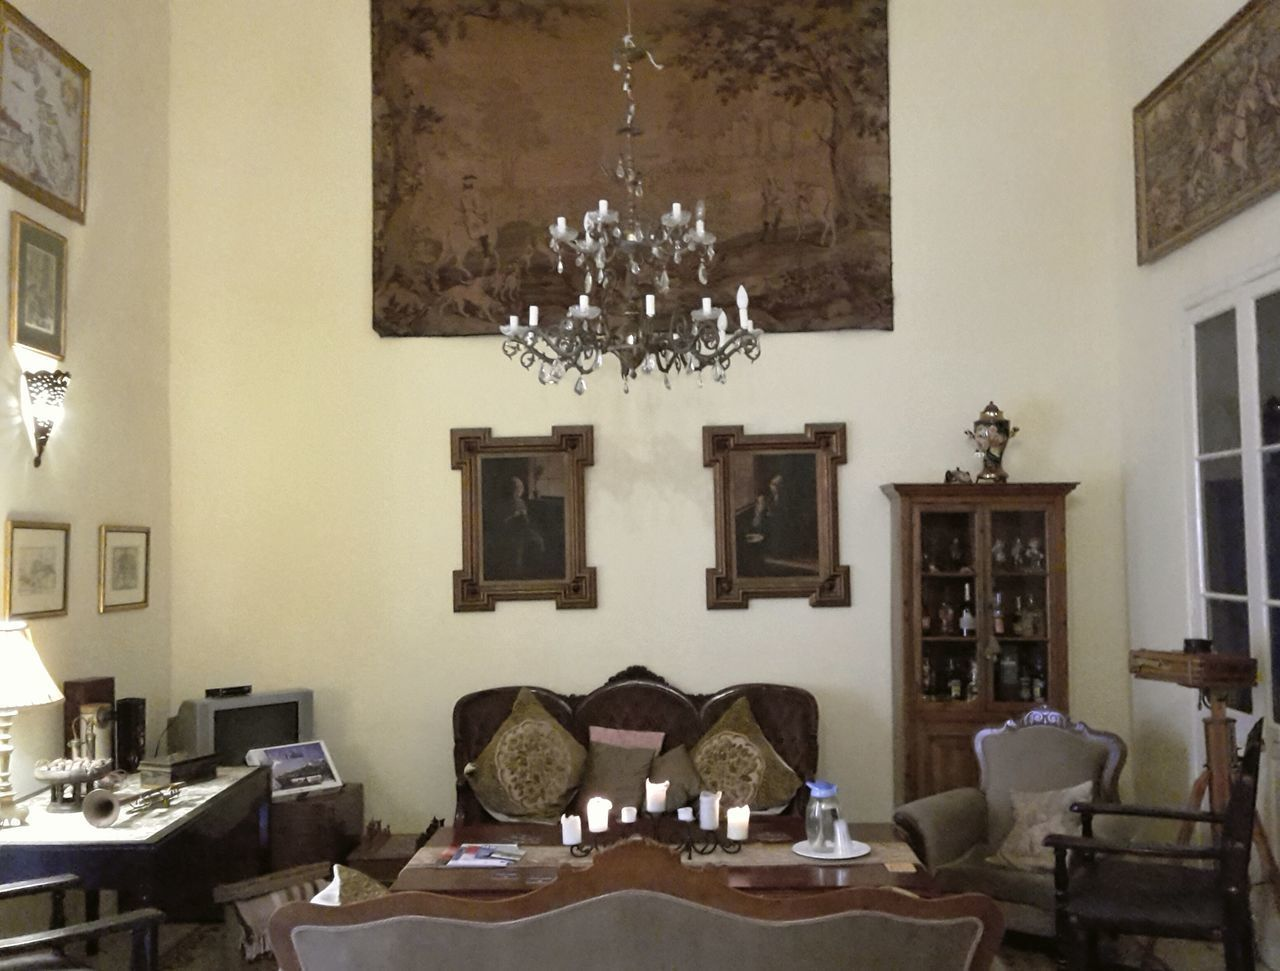 Livingroom of a historic house in Valletta, Malta Indoors  Architecture Home Showcase Interior No People Domestic Life Day Historic Old Medieval Architecture Medieval Luster Chandelier Painting Sofa Tapestry Large Ceiling Height Vitrine Past Past Times  House Interior Furniture